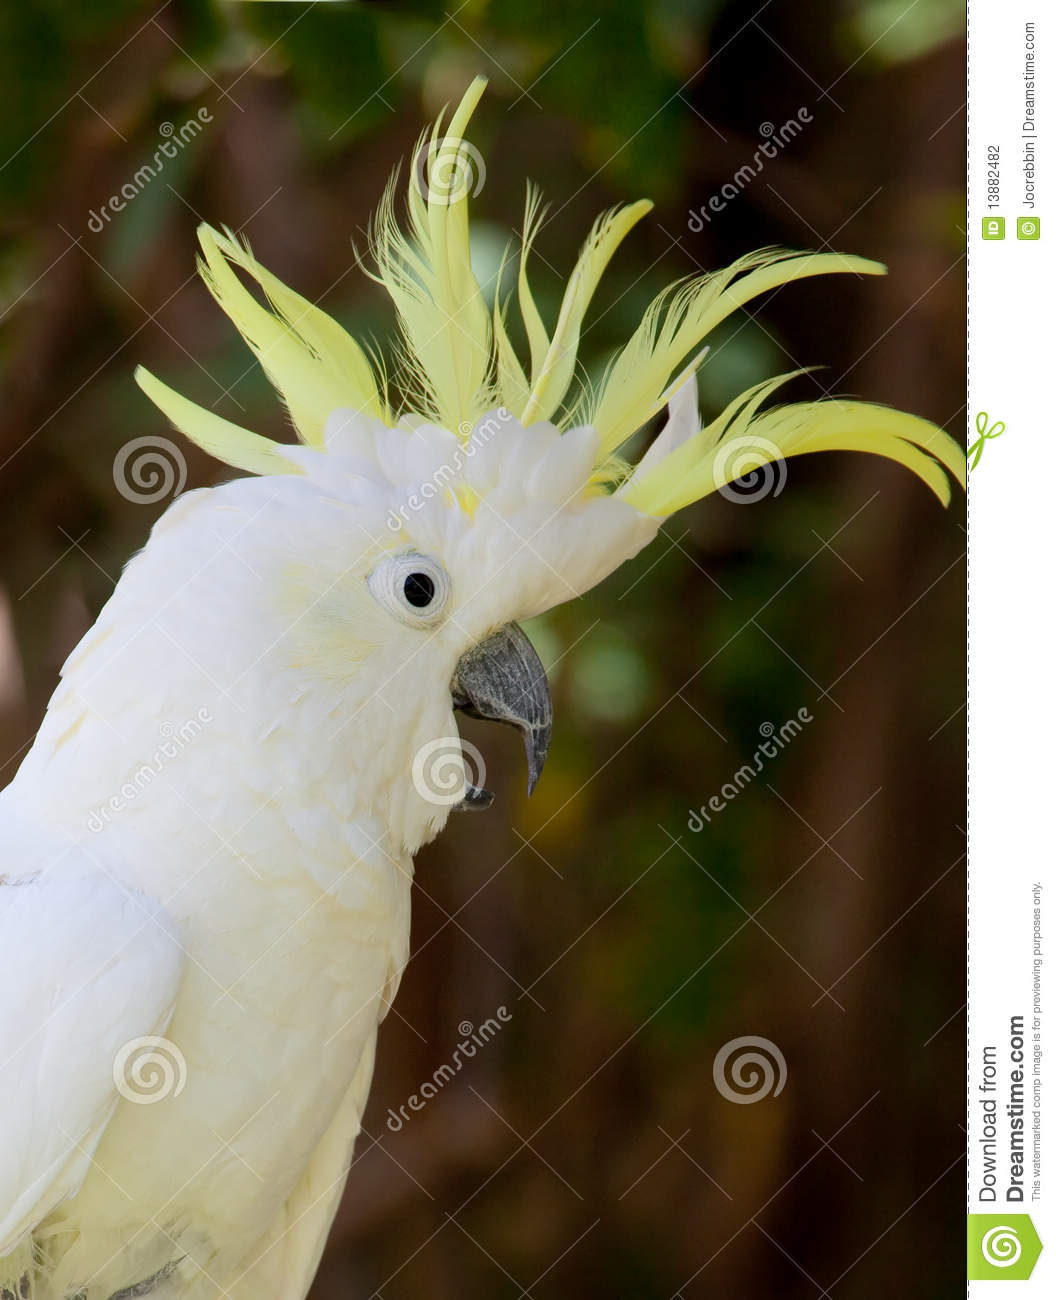 Upset White Cockatoo With Yellow Crest Stock Photography - Image ...